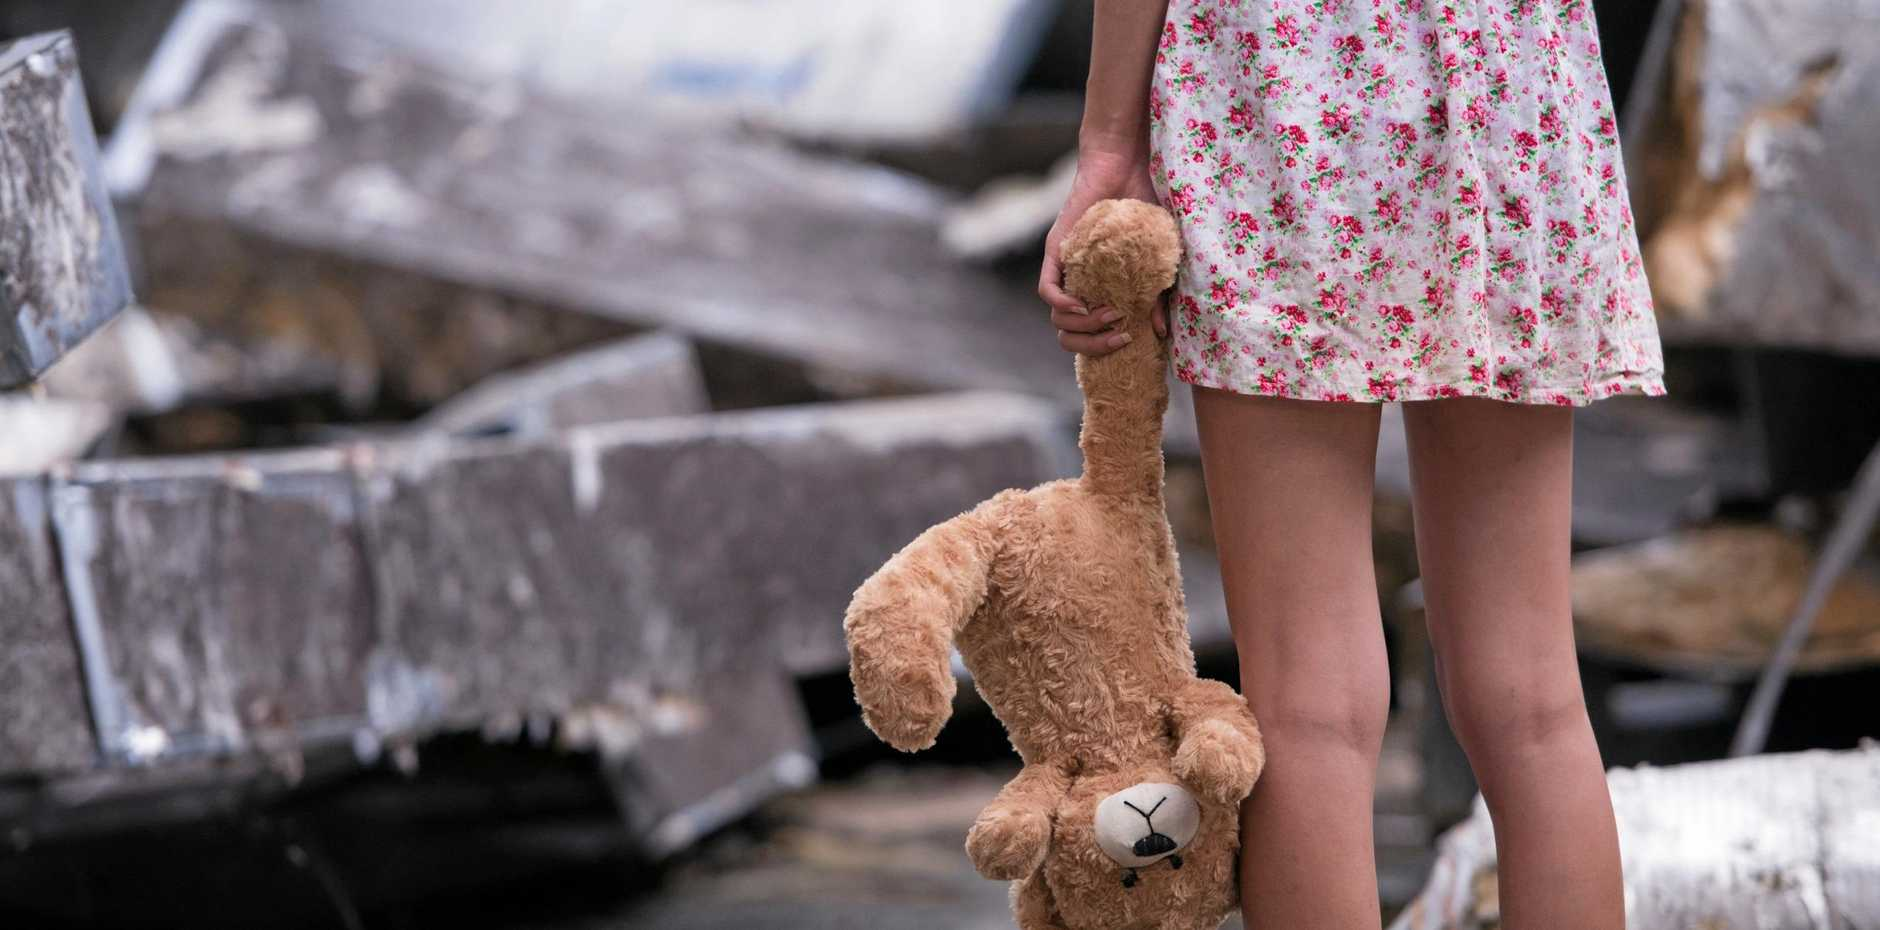 Children as young as three attend a specialised trauma kindy, as dozens of experts battle to get their young lives back on track after violence and abuse.